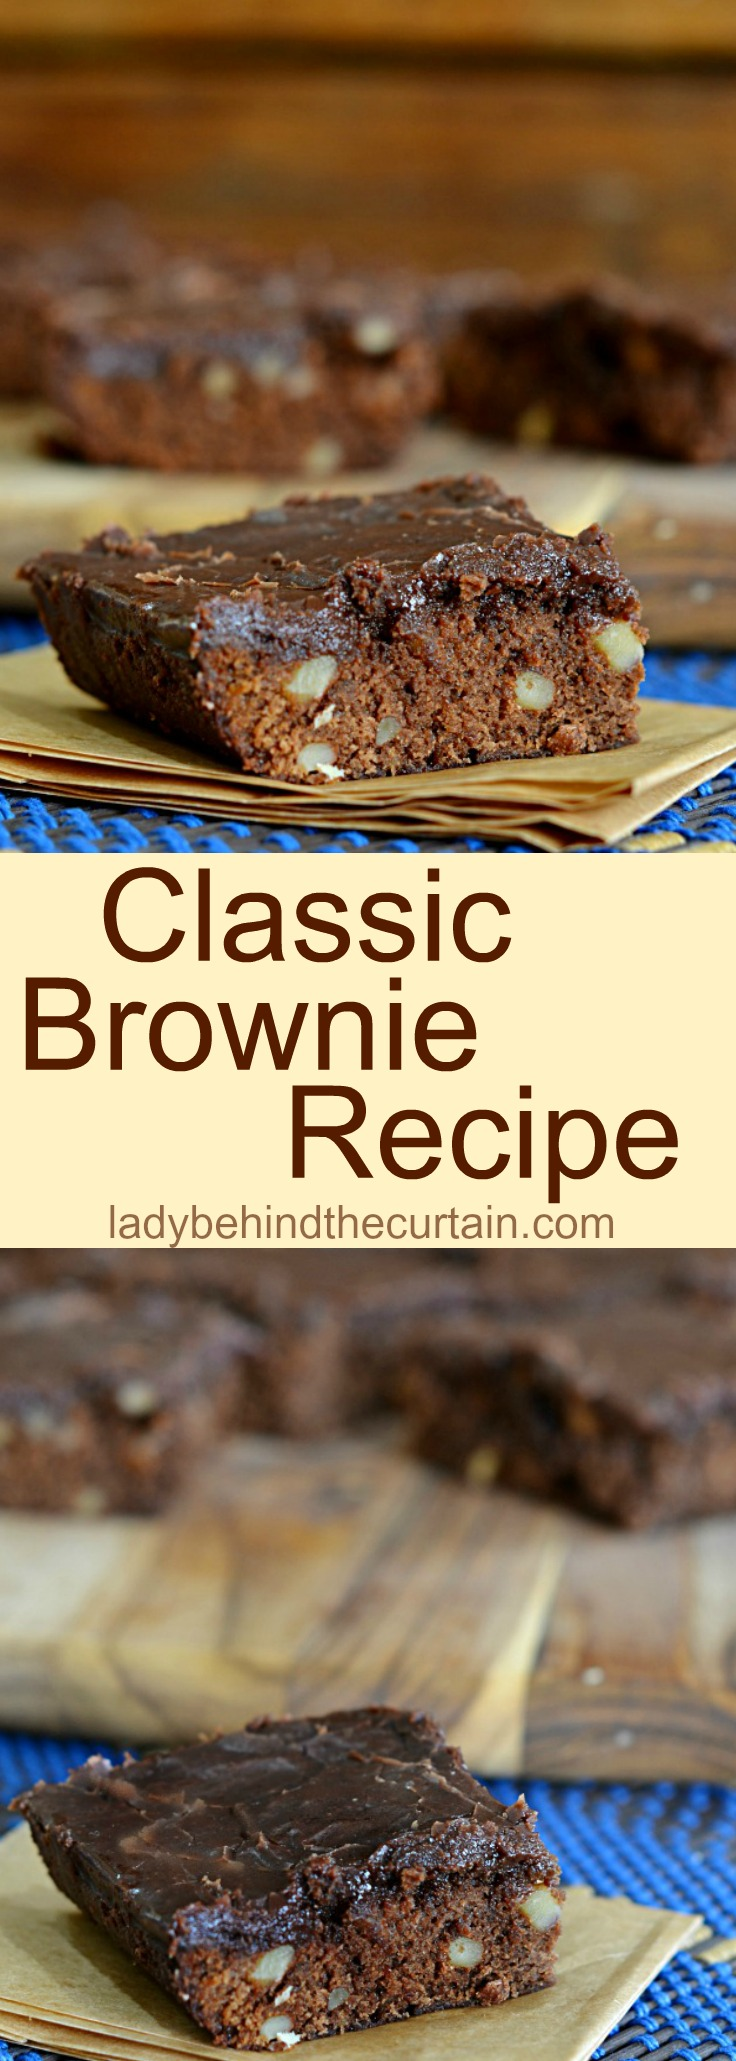 Classic Brownie Recipe| chocolate, easy brownie recipe, summer ...